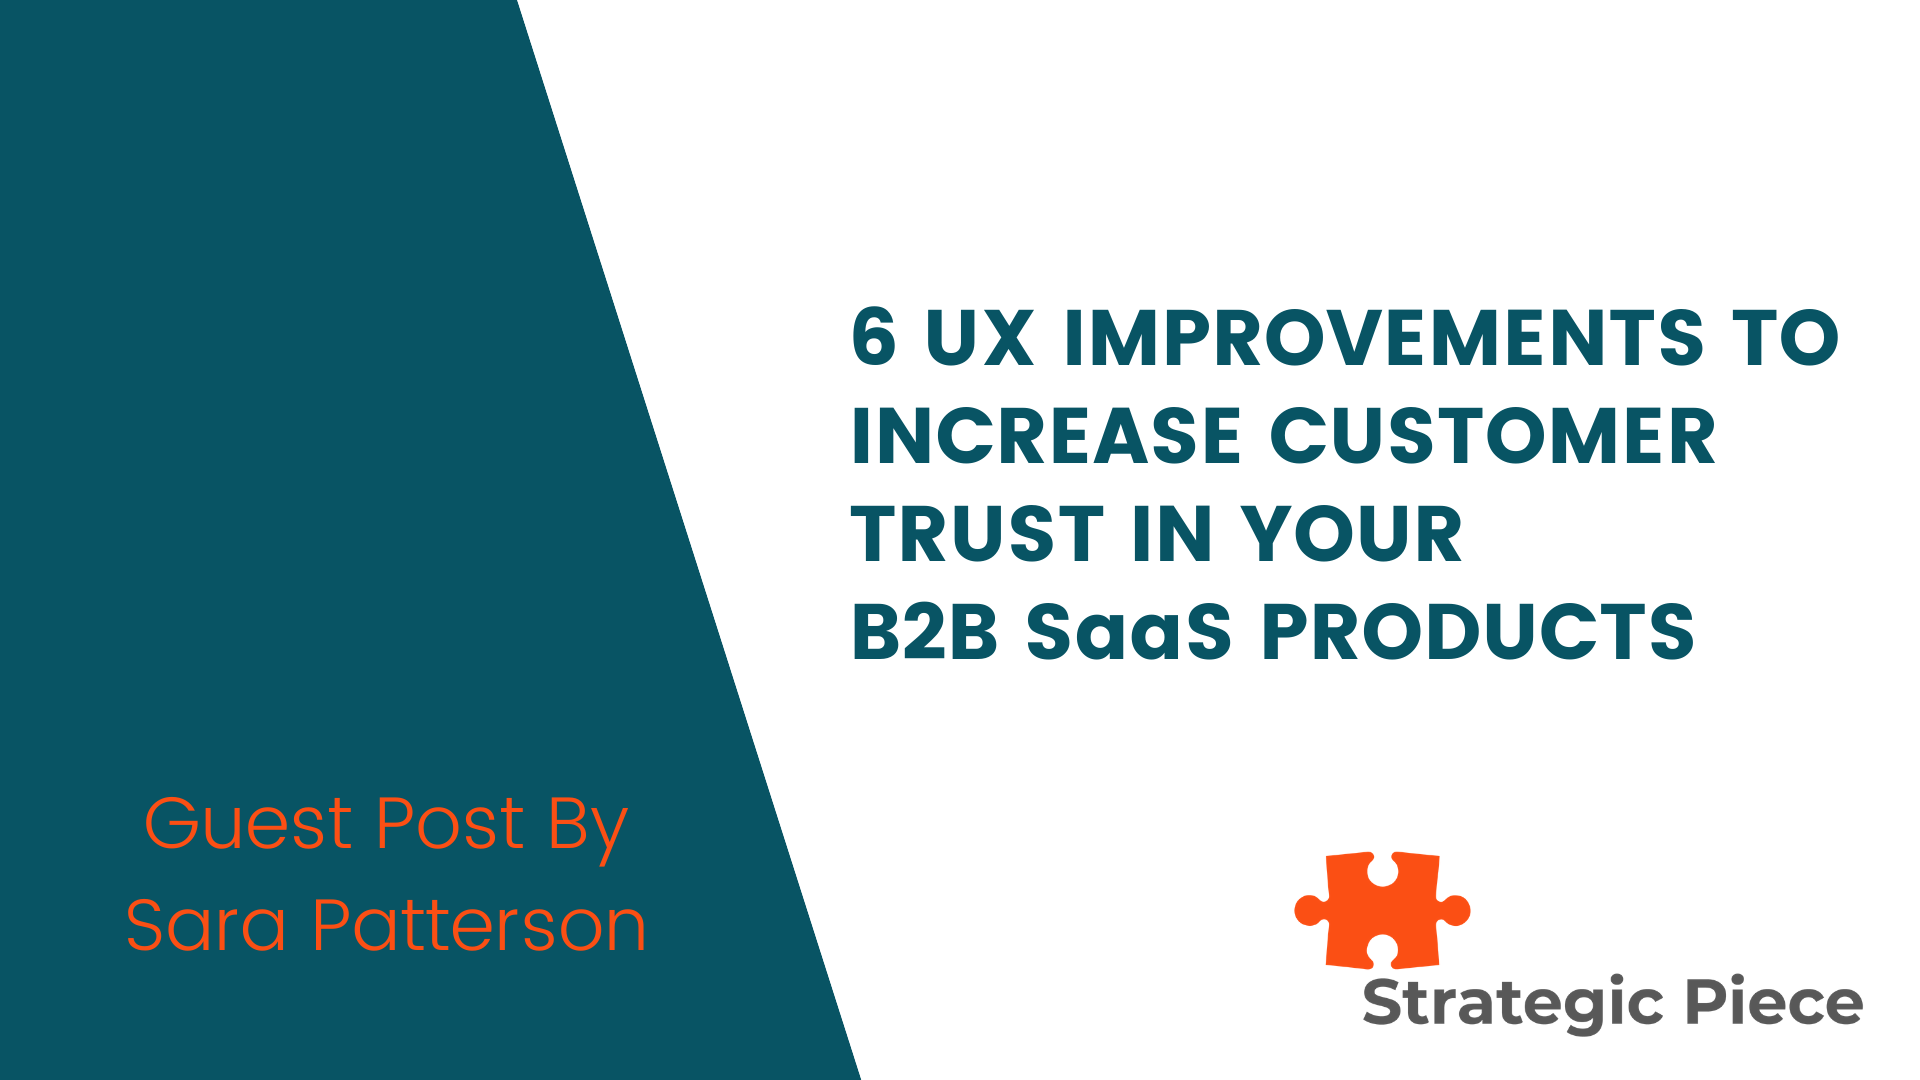 6 UX Improvements to Increase Customer Trust in Your B2B SaaS Products